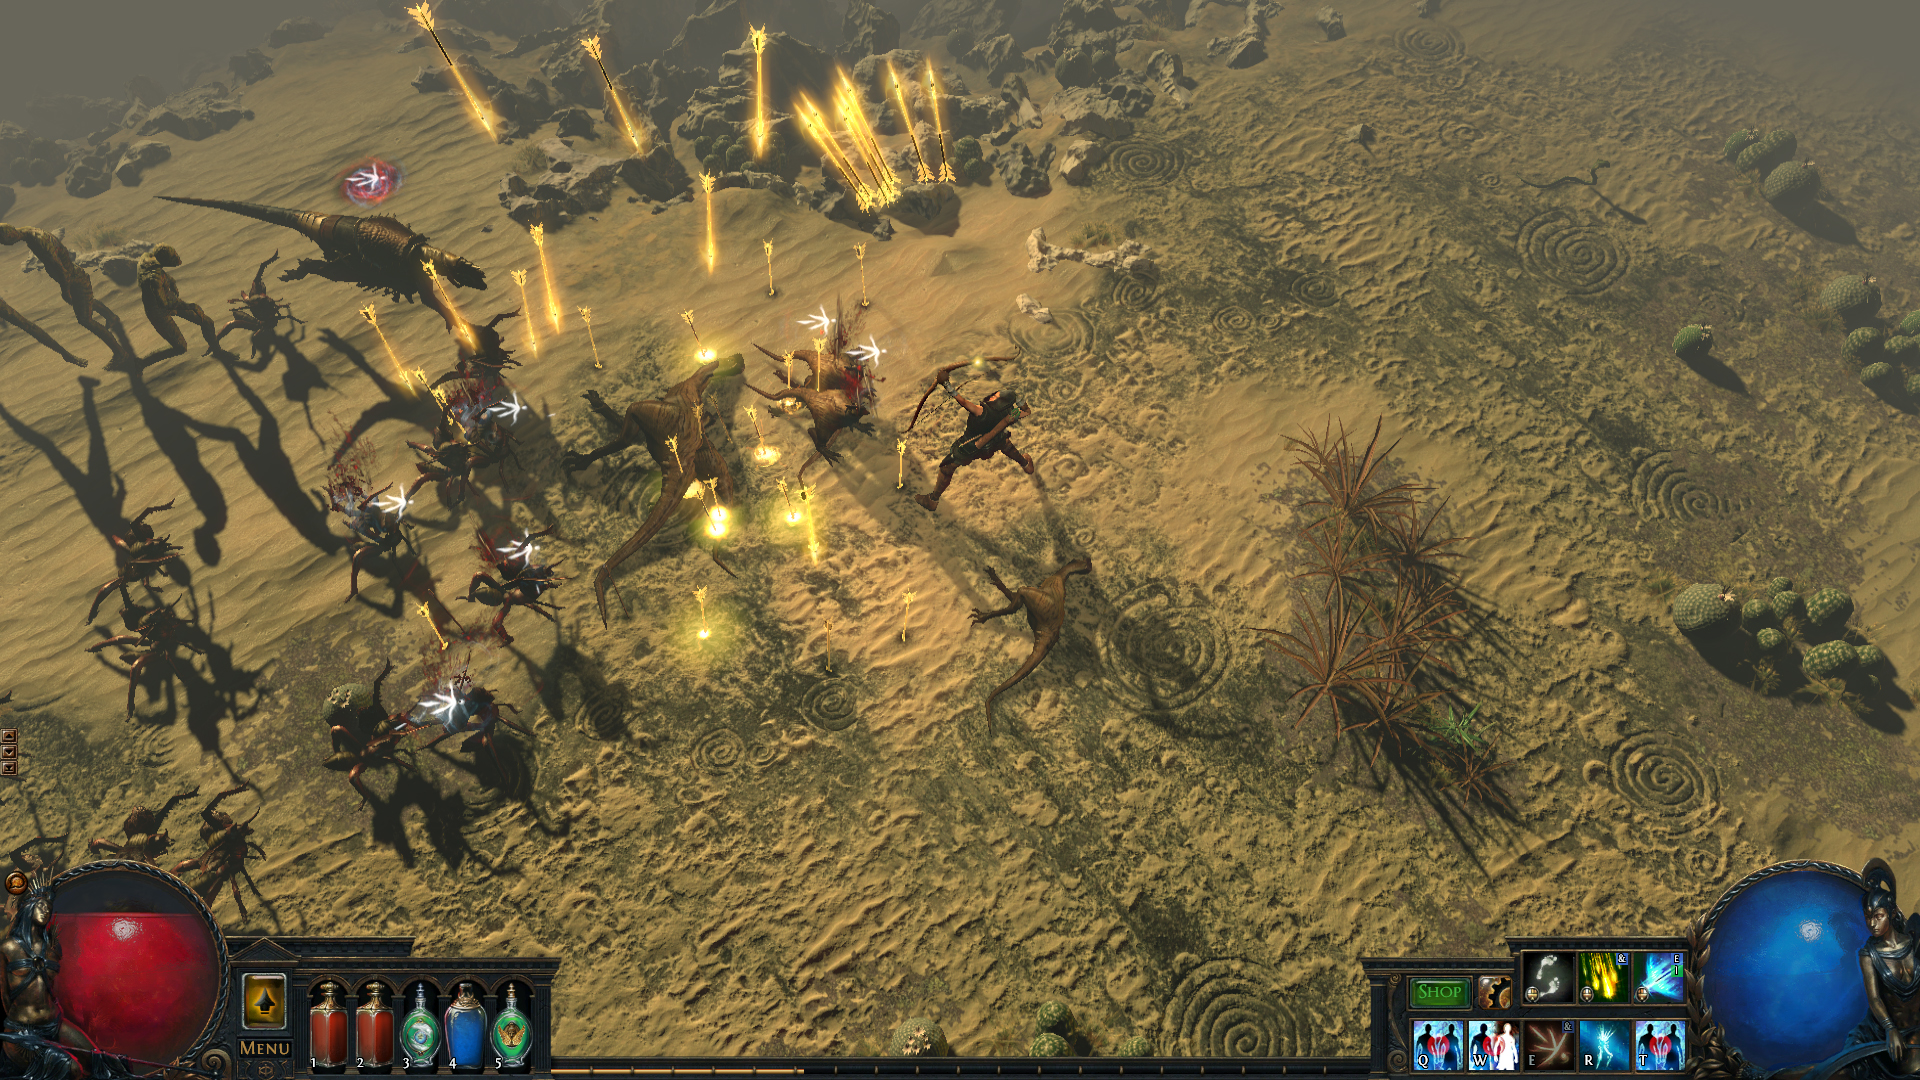 The ever-present Tencent acquires majority of Path of Exile developer screenshot